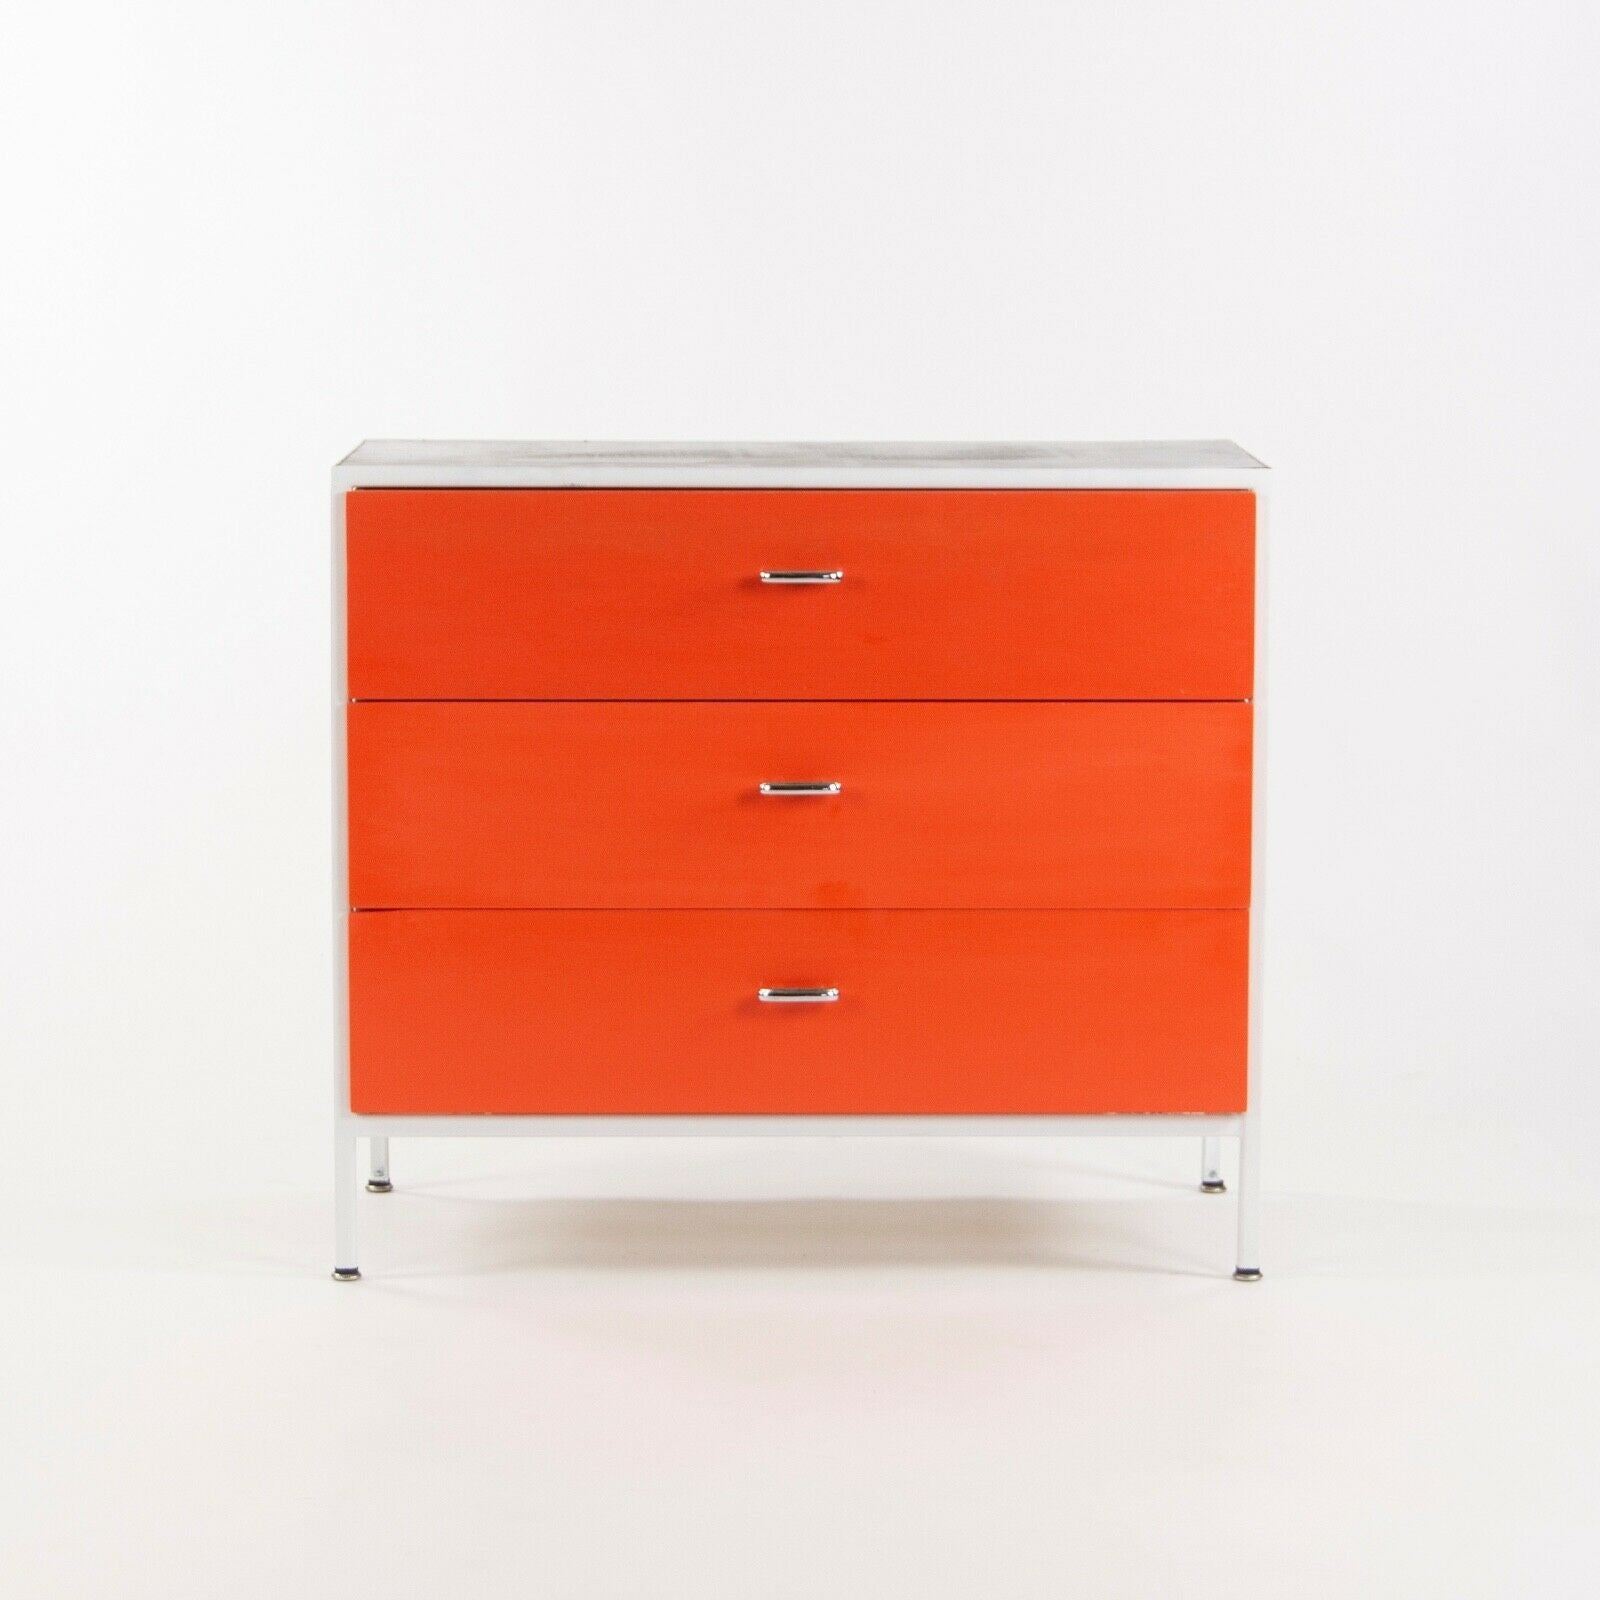 SOLD 1950s George Nelson for Herman Miller Steel Frame Case Series Orange Dresser